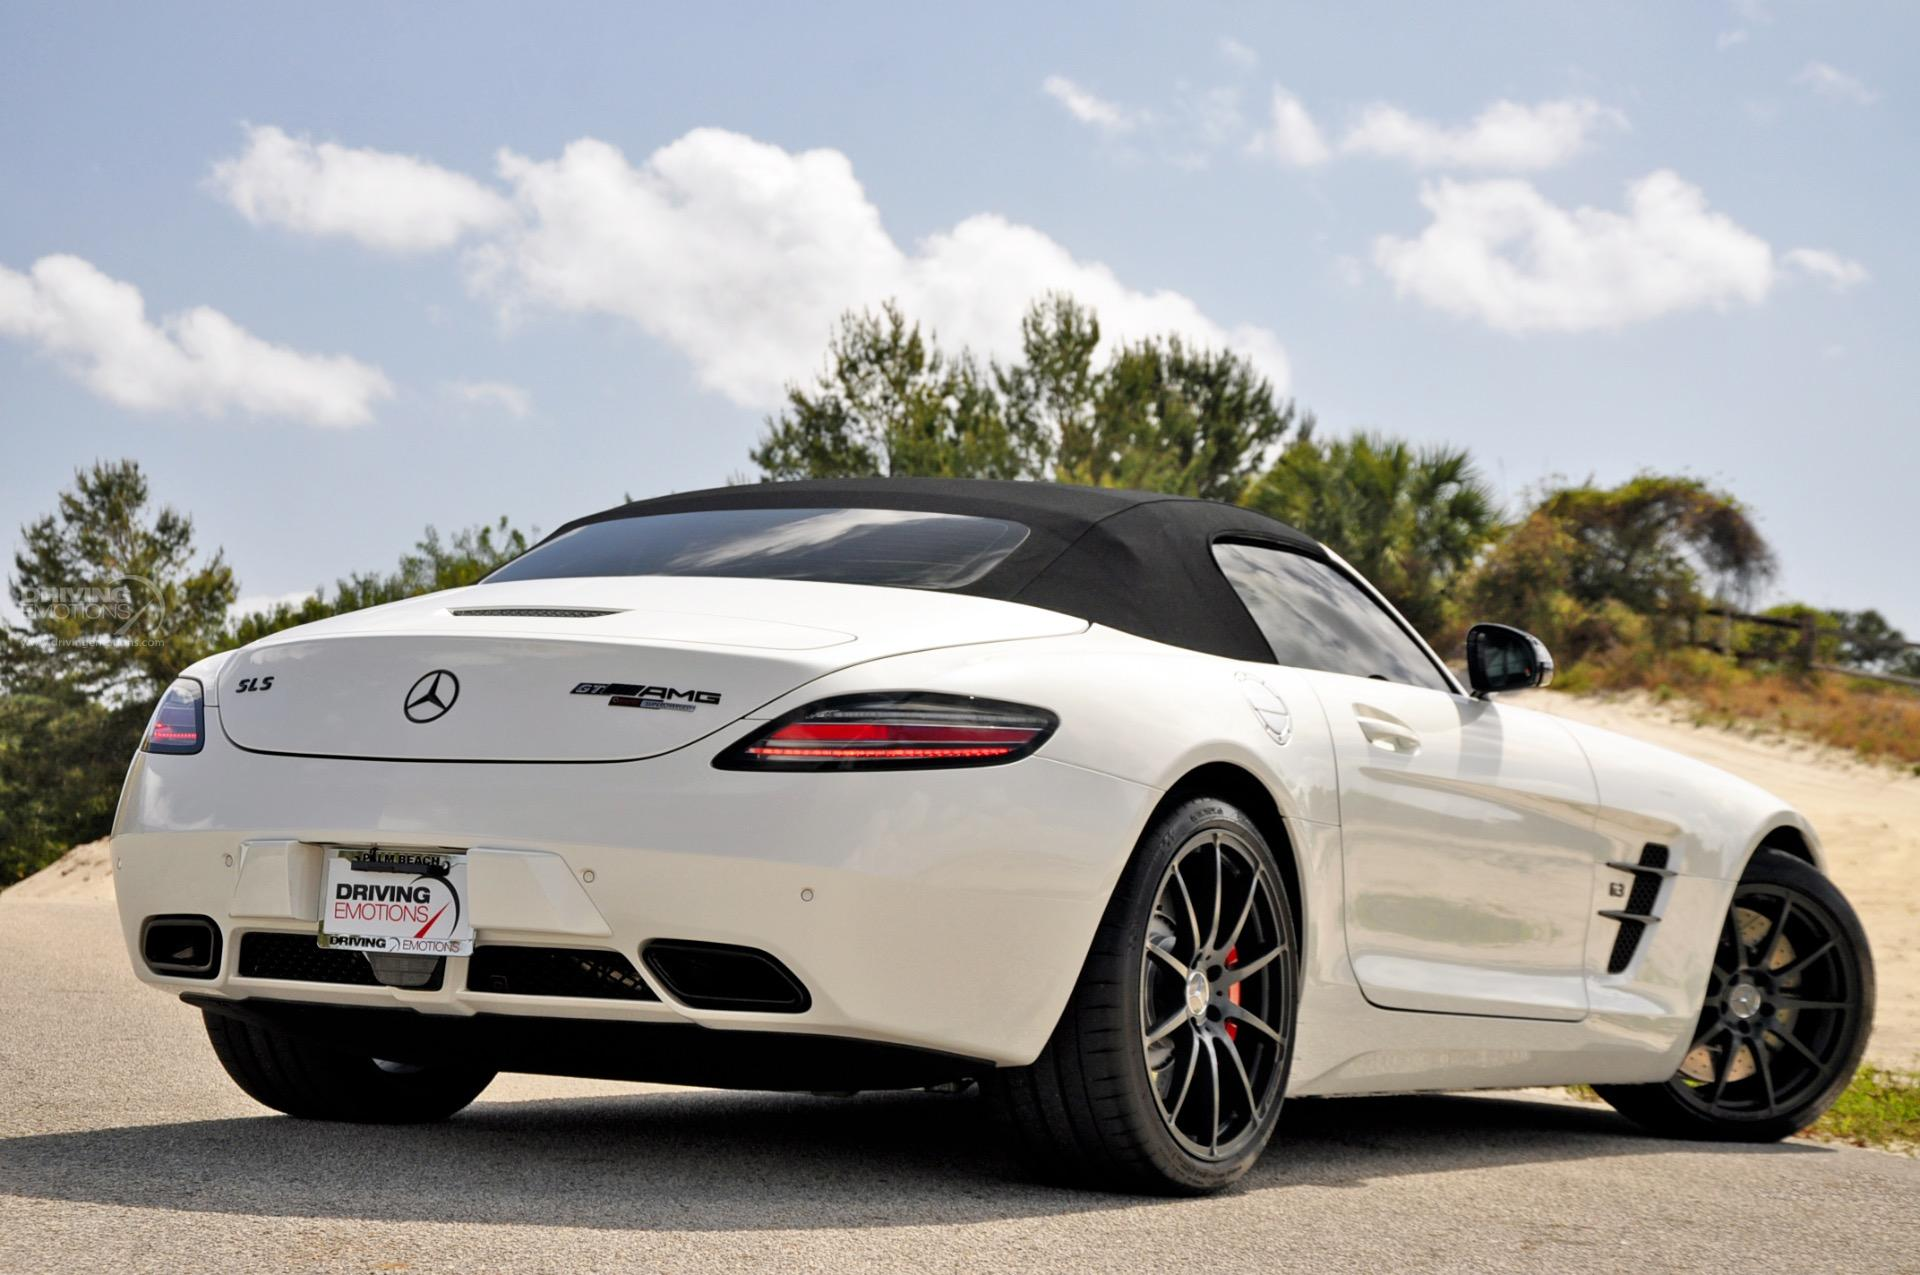 2014 mercedes benz sls amg gt roadster weistec for Mercedes benz sls amg convertible for sale